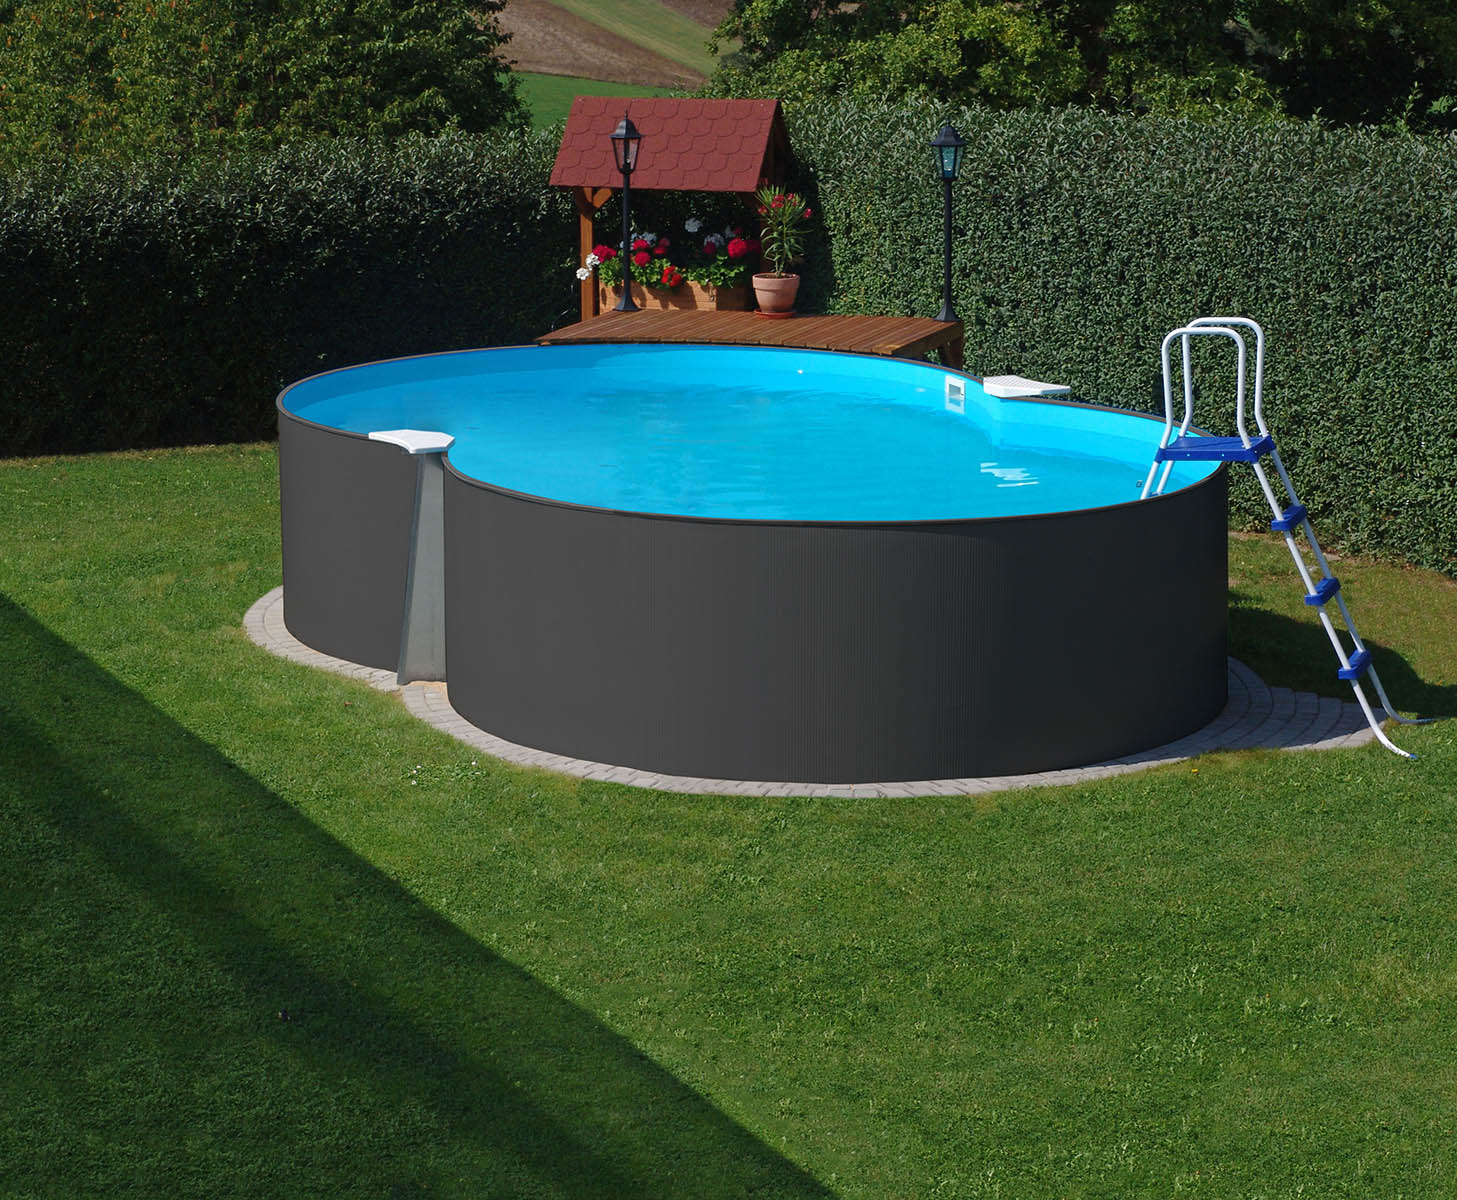 PLANET POOL Achtformpool 650x420x120cm ANTHRAZIT